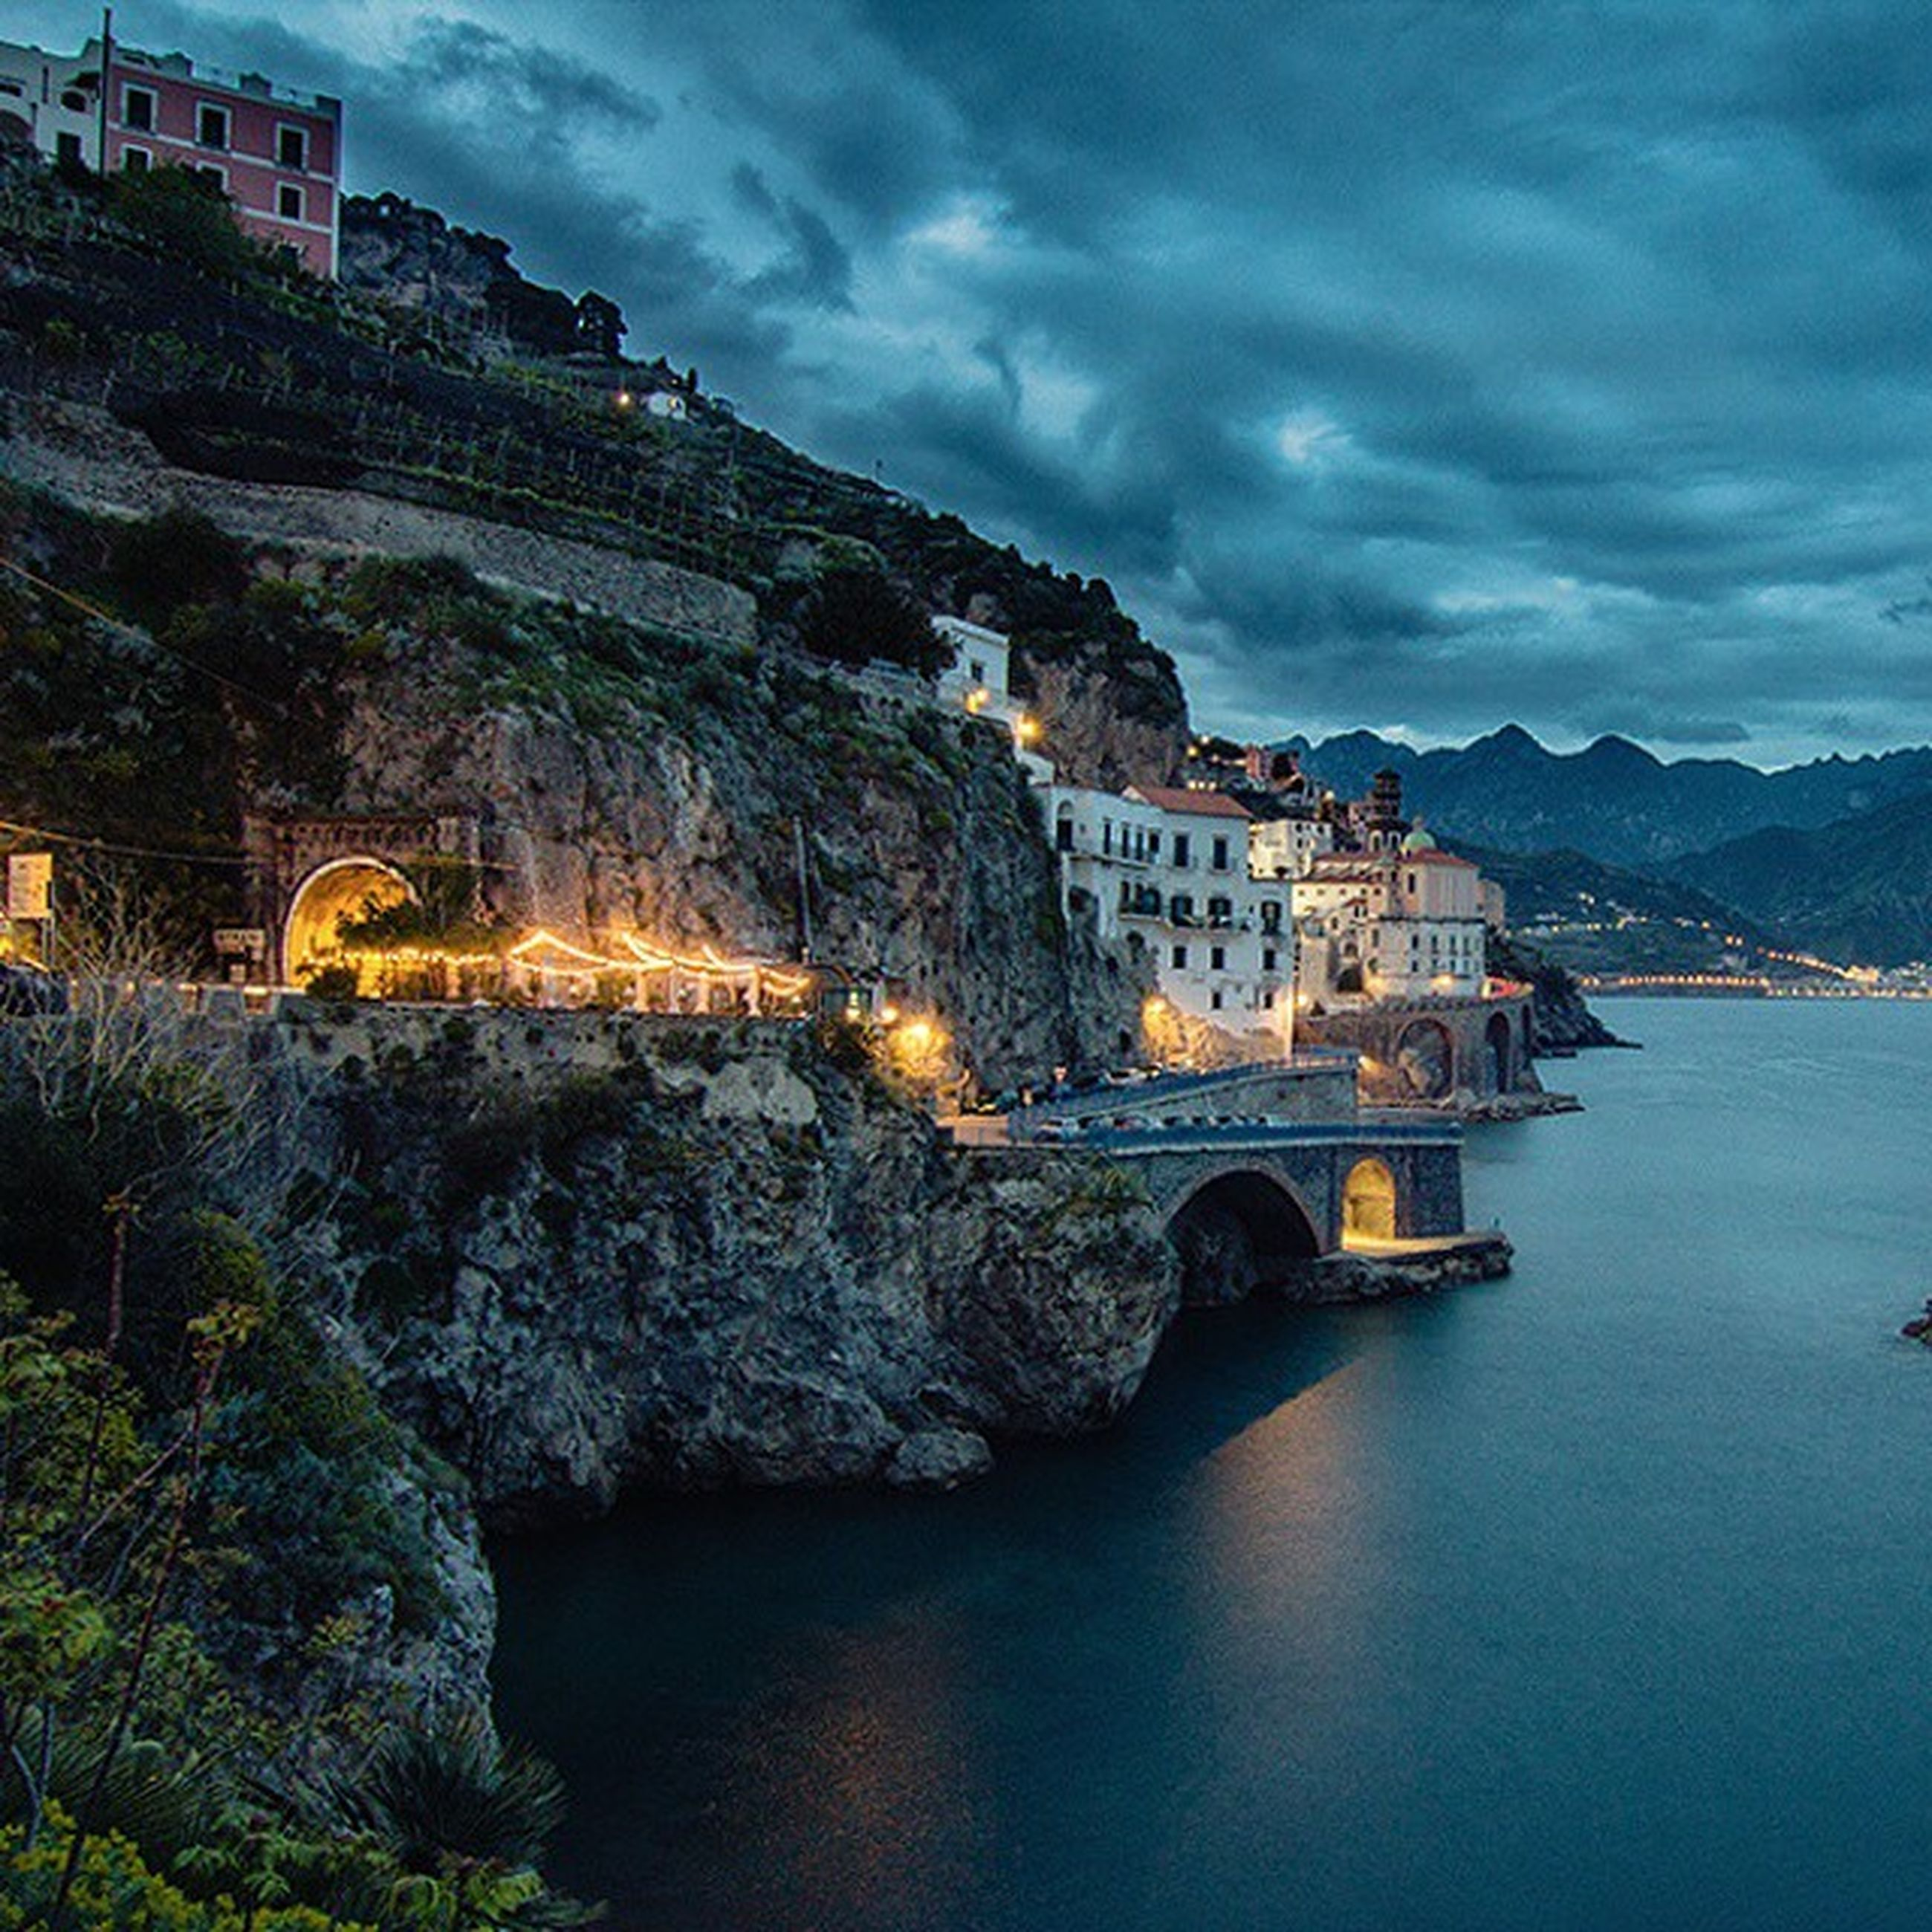 architecture, built structure, water, building exterior, sky, cloud - sky, waterfront, river, mountain, cloudy, residential structure, house, cloud, residential building, sea, town, city, reflection, rock - object, nature